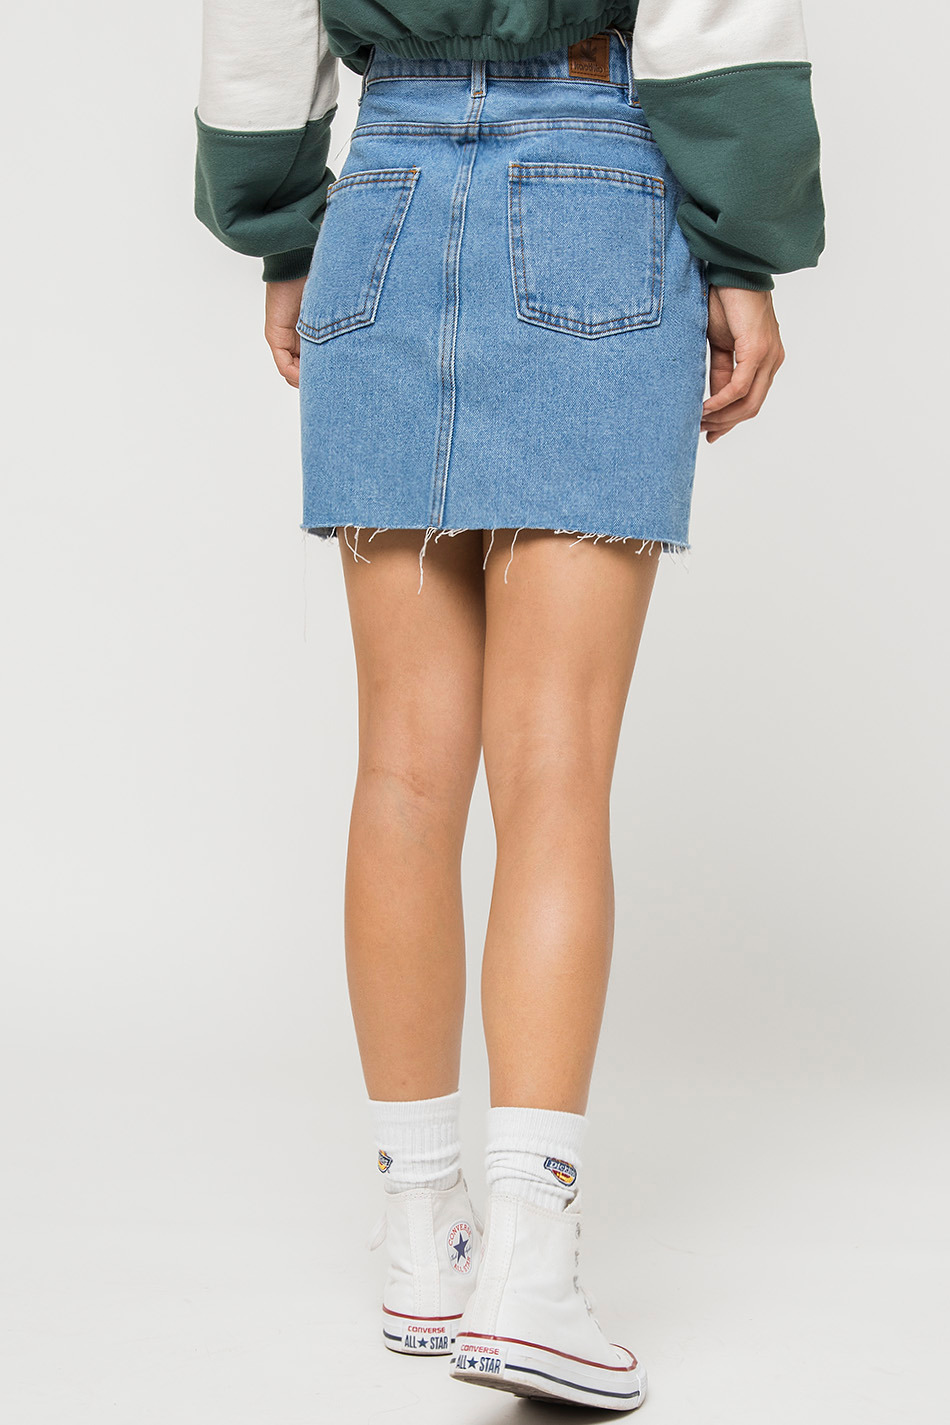 denim stone skirt